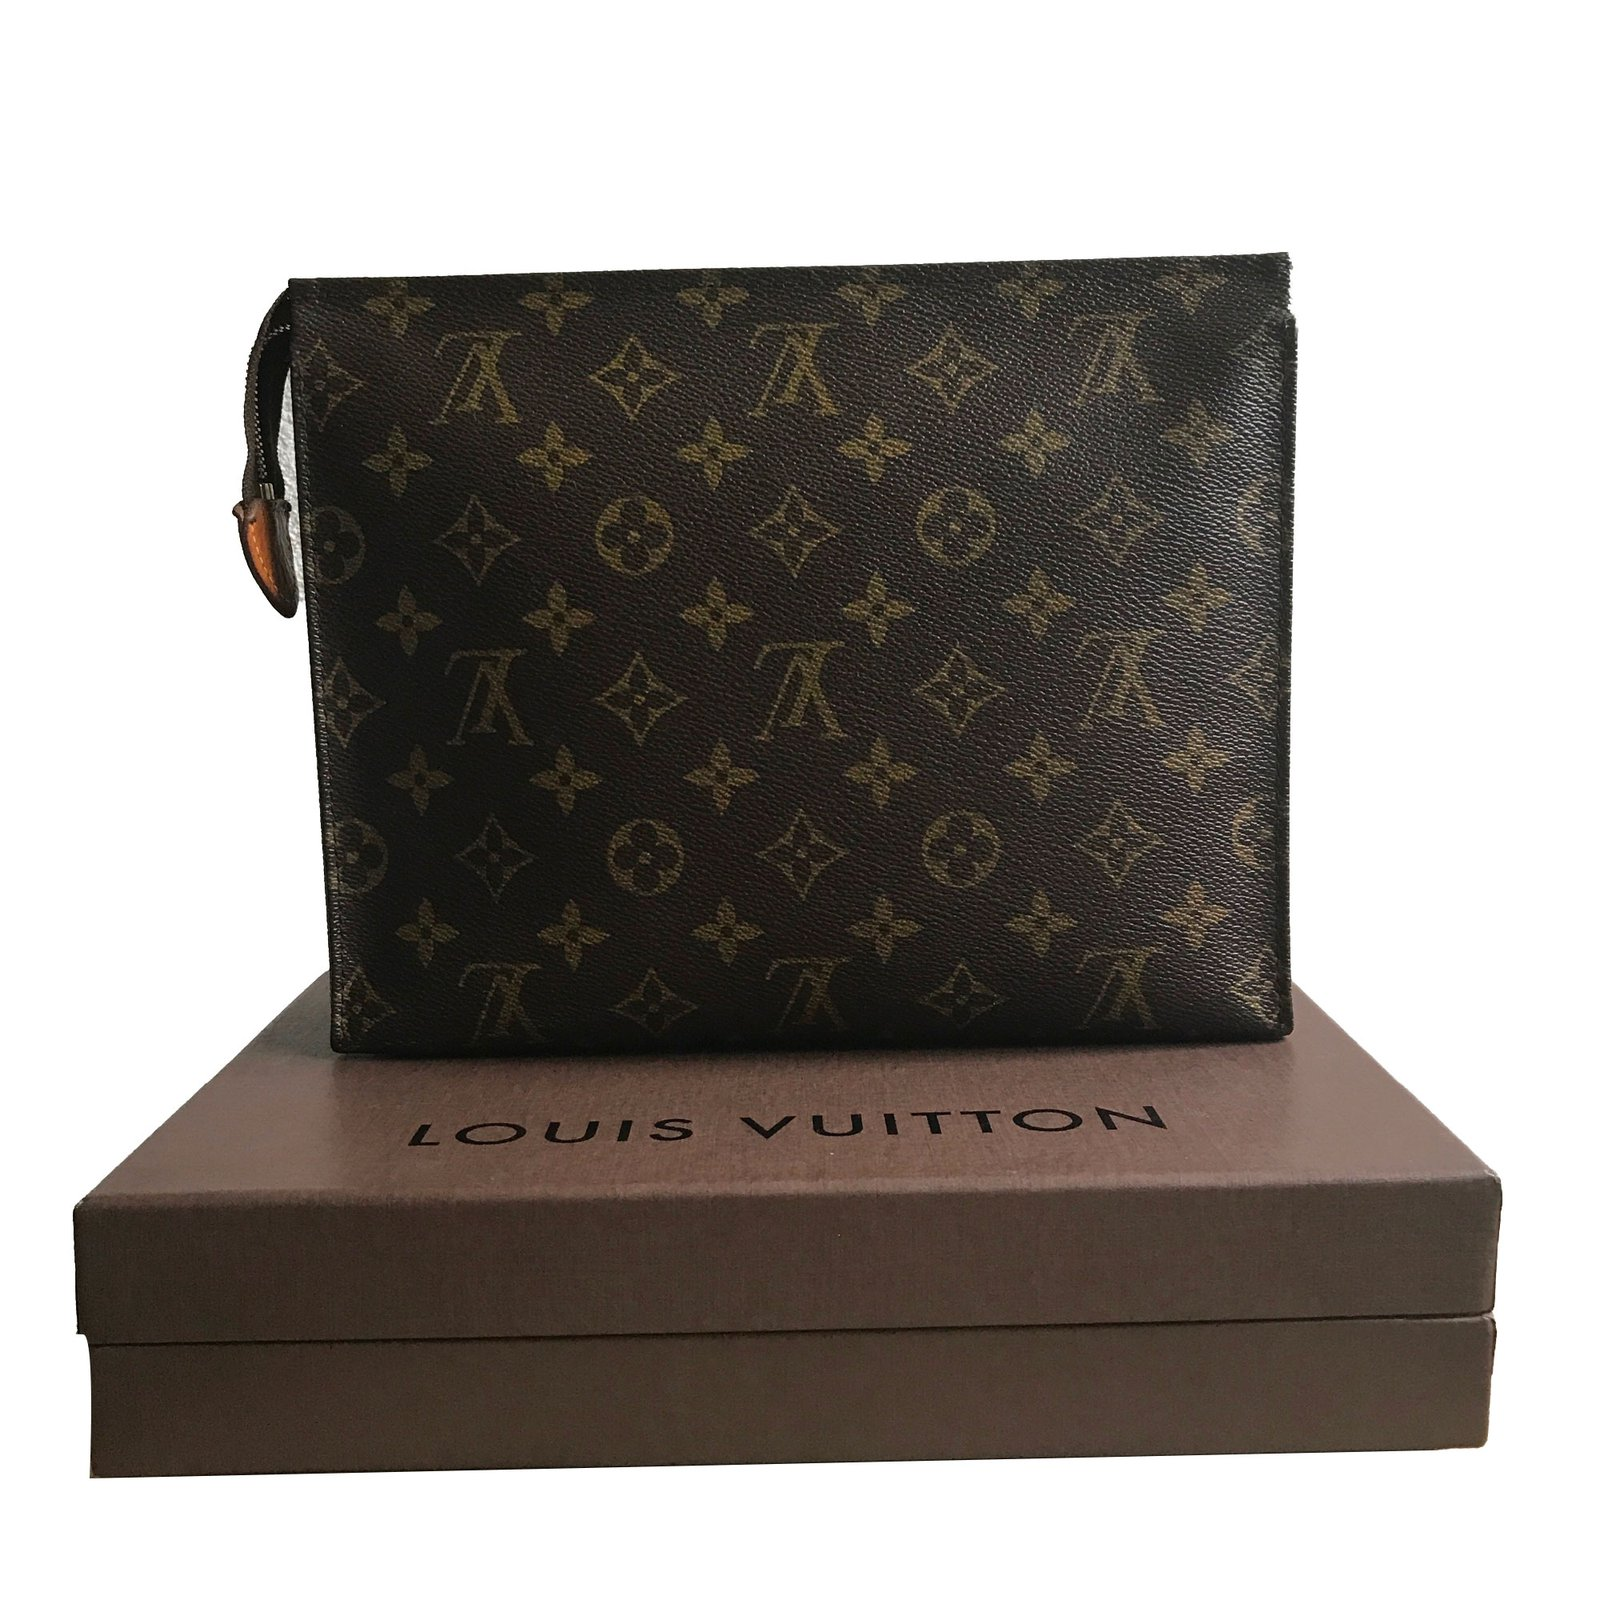 Louis Vuitton Louis Vuitton 26 Clutch Bag Clutch Bags Leather fe5cff7eb44ae